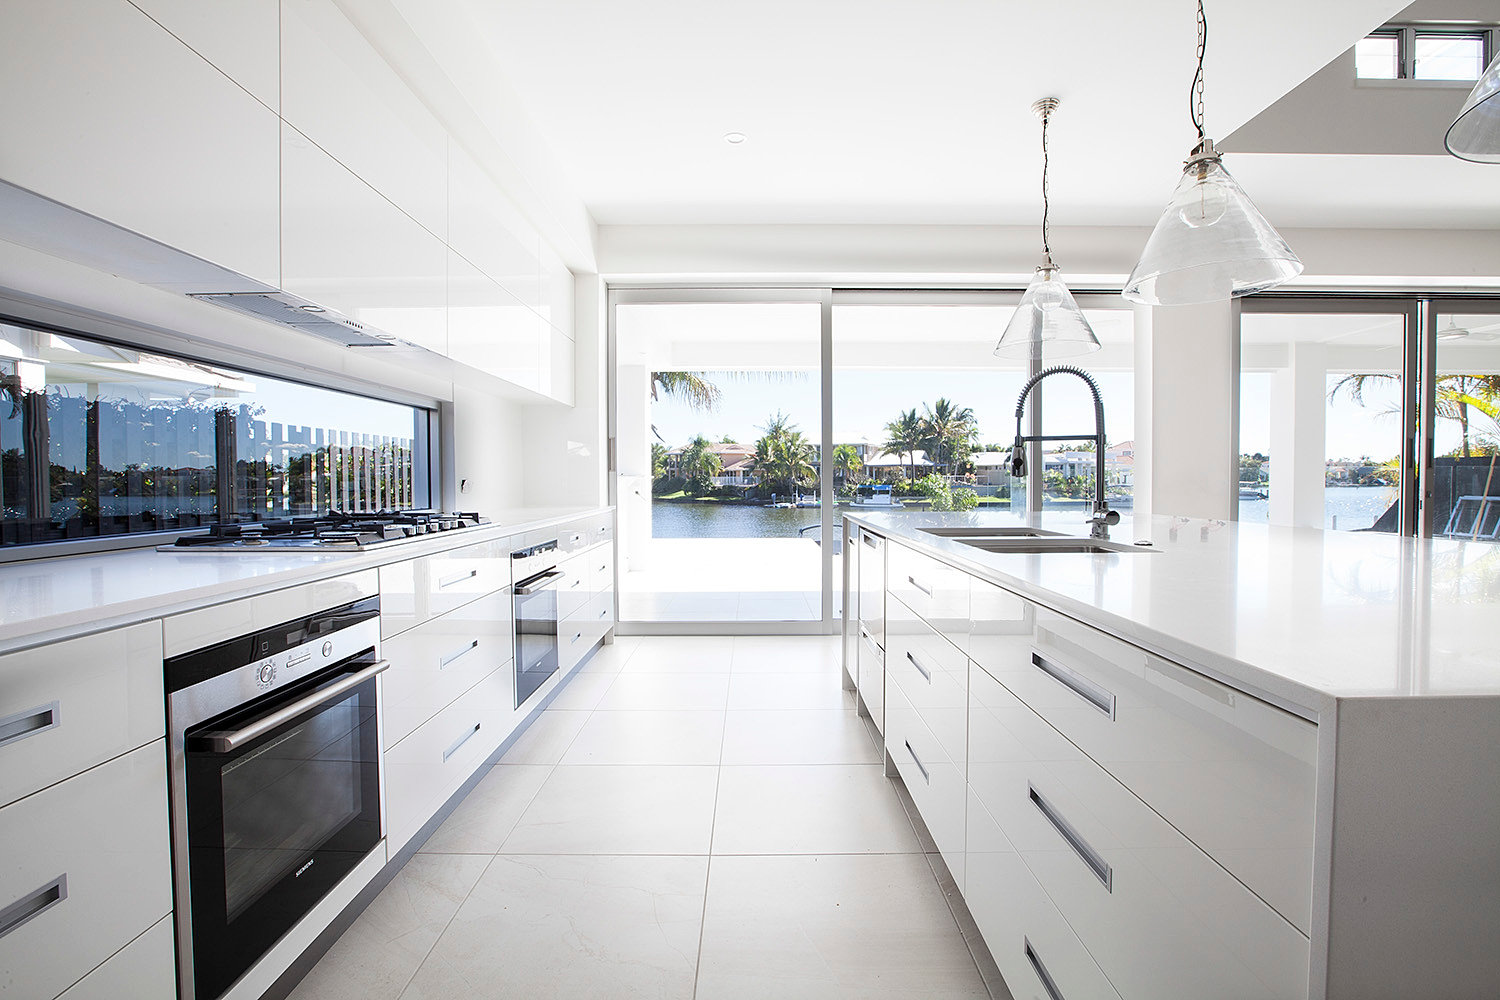 Lucas Muro Architectural Interiors Photographer Kitchen Design